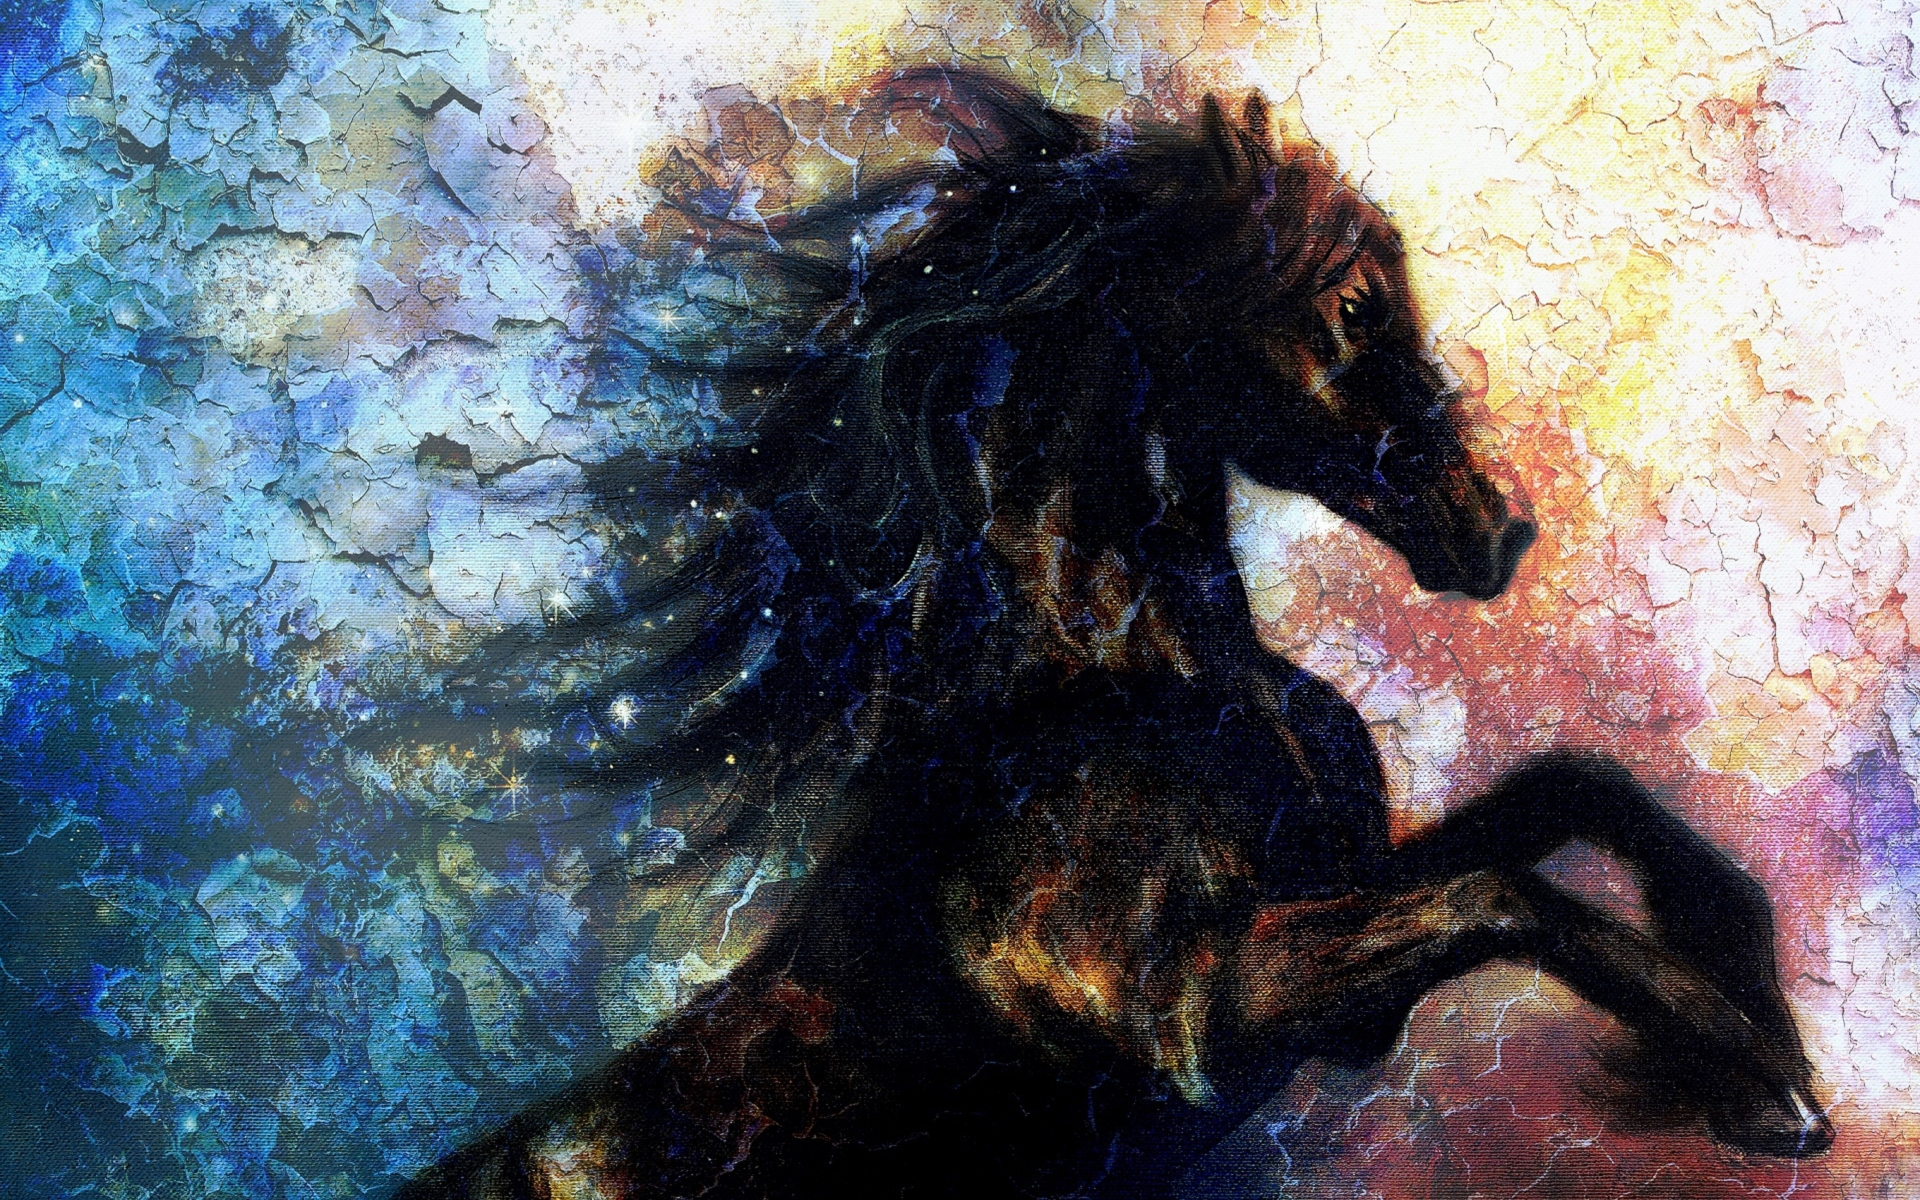 Pretty Black Horse Wall Art Wallpapers And Stock Photos - Painting On Canvas Of A Black Unicorn Dancing In Space , HD Wallpaper & Backgrounds